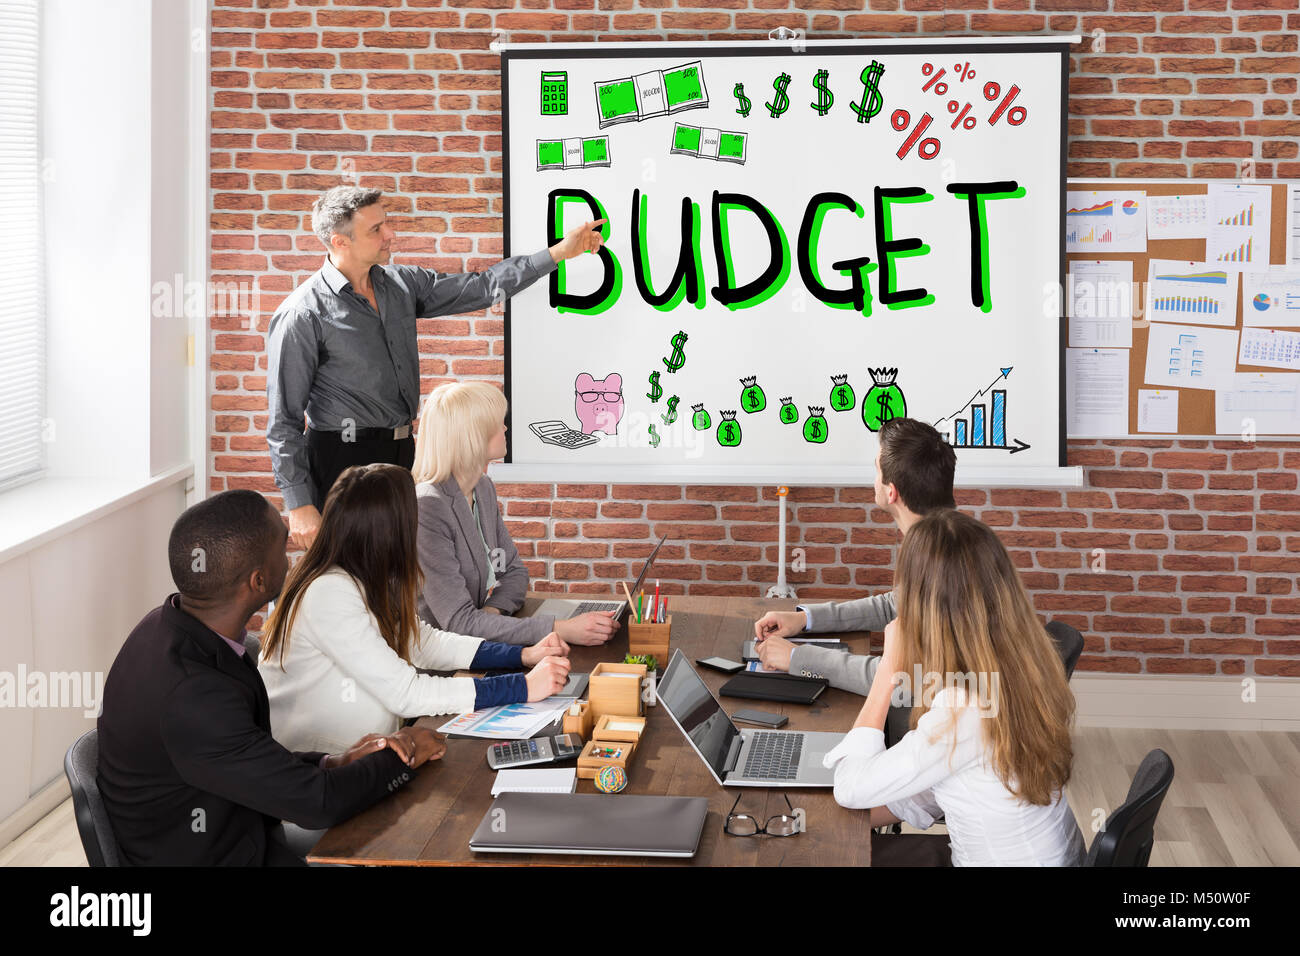 Group Of People At Budget And Finance Presentation - Stock Image